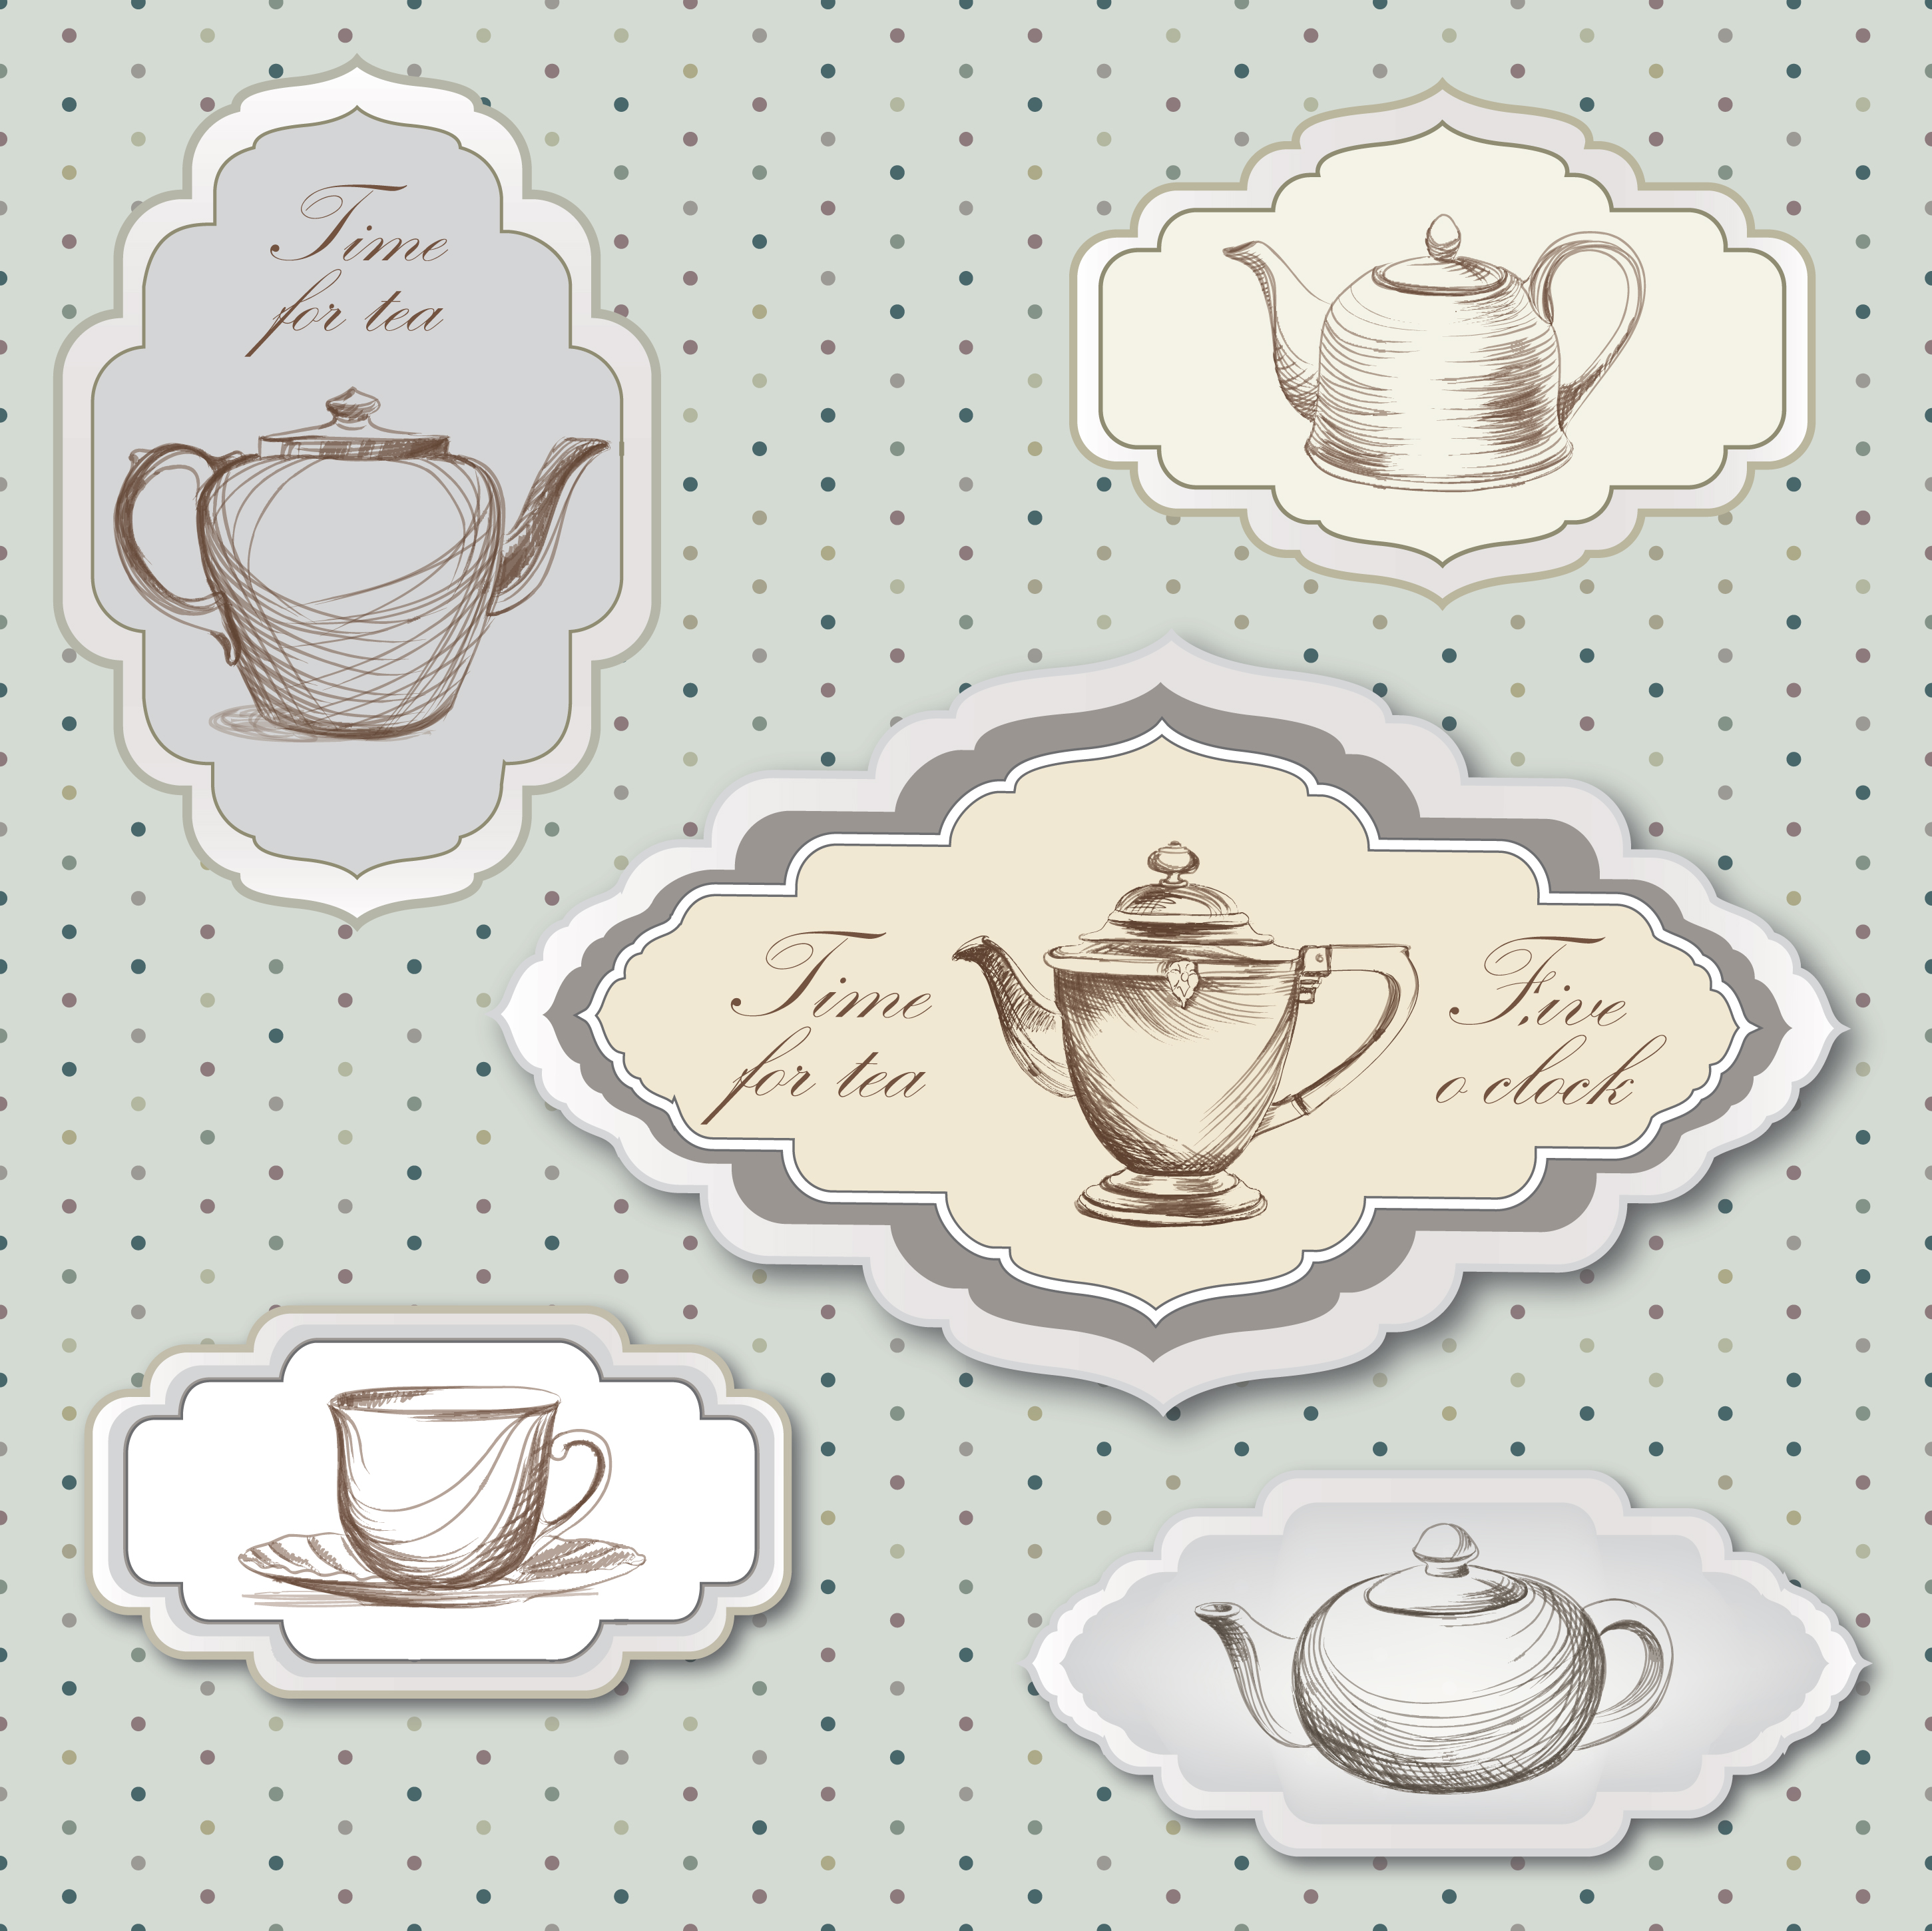 Vintage time card clipart free library Tea cup, pot, kettle retro card. Tea time vintage label set ... free library